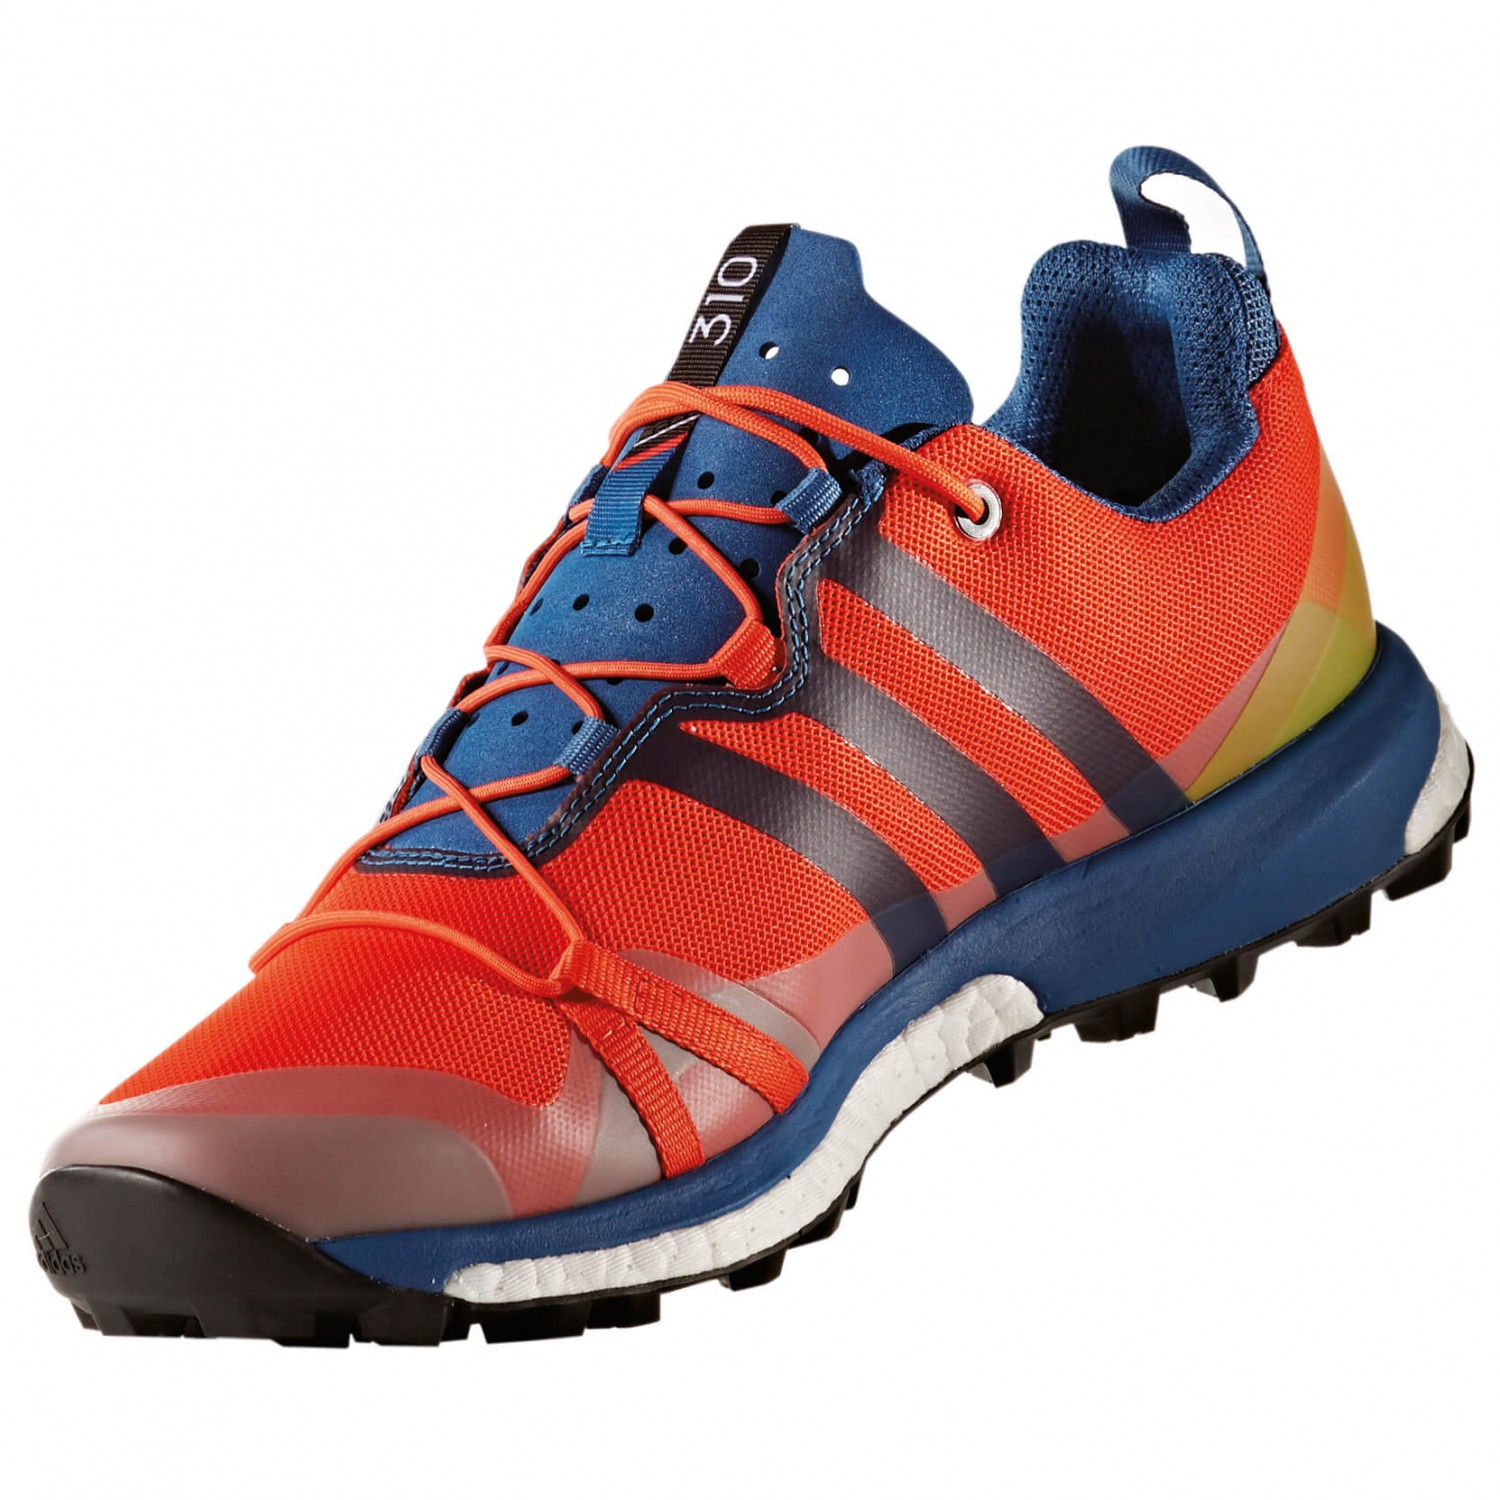 Adidas Running Shoes Outdoor